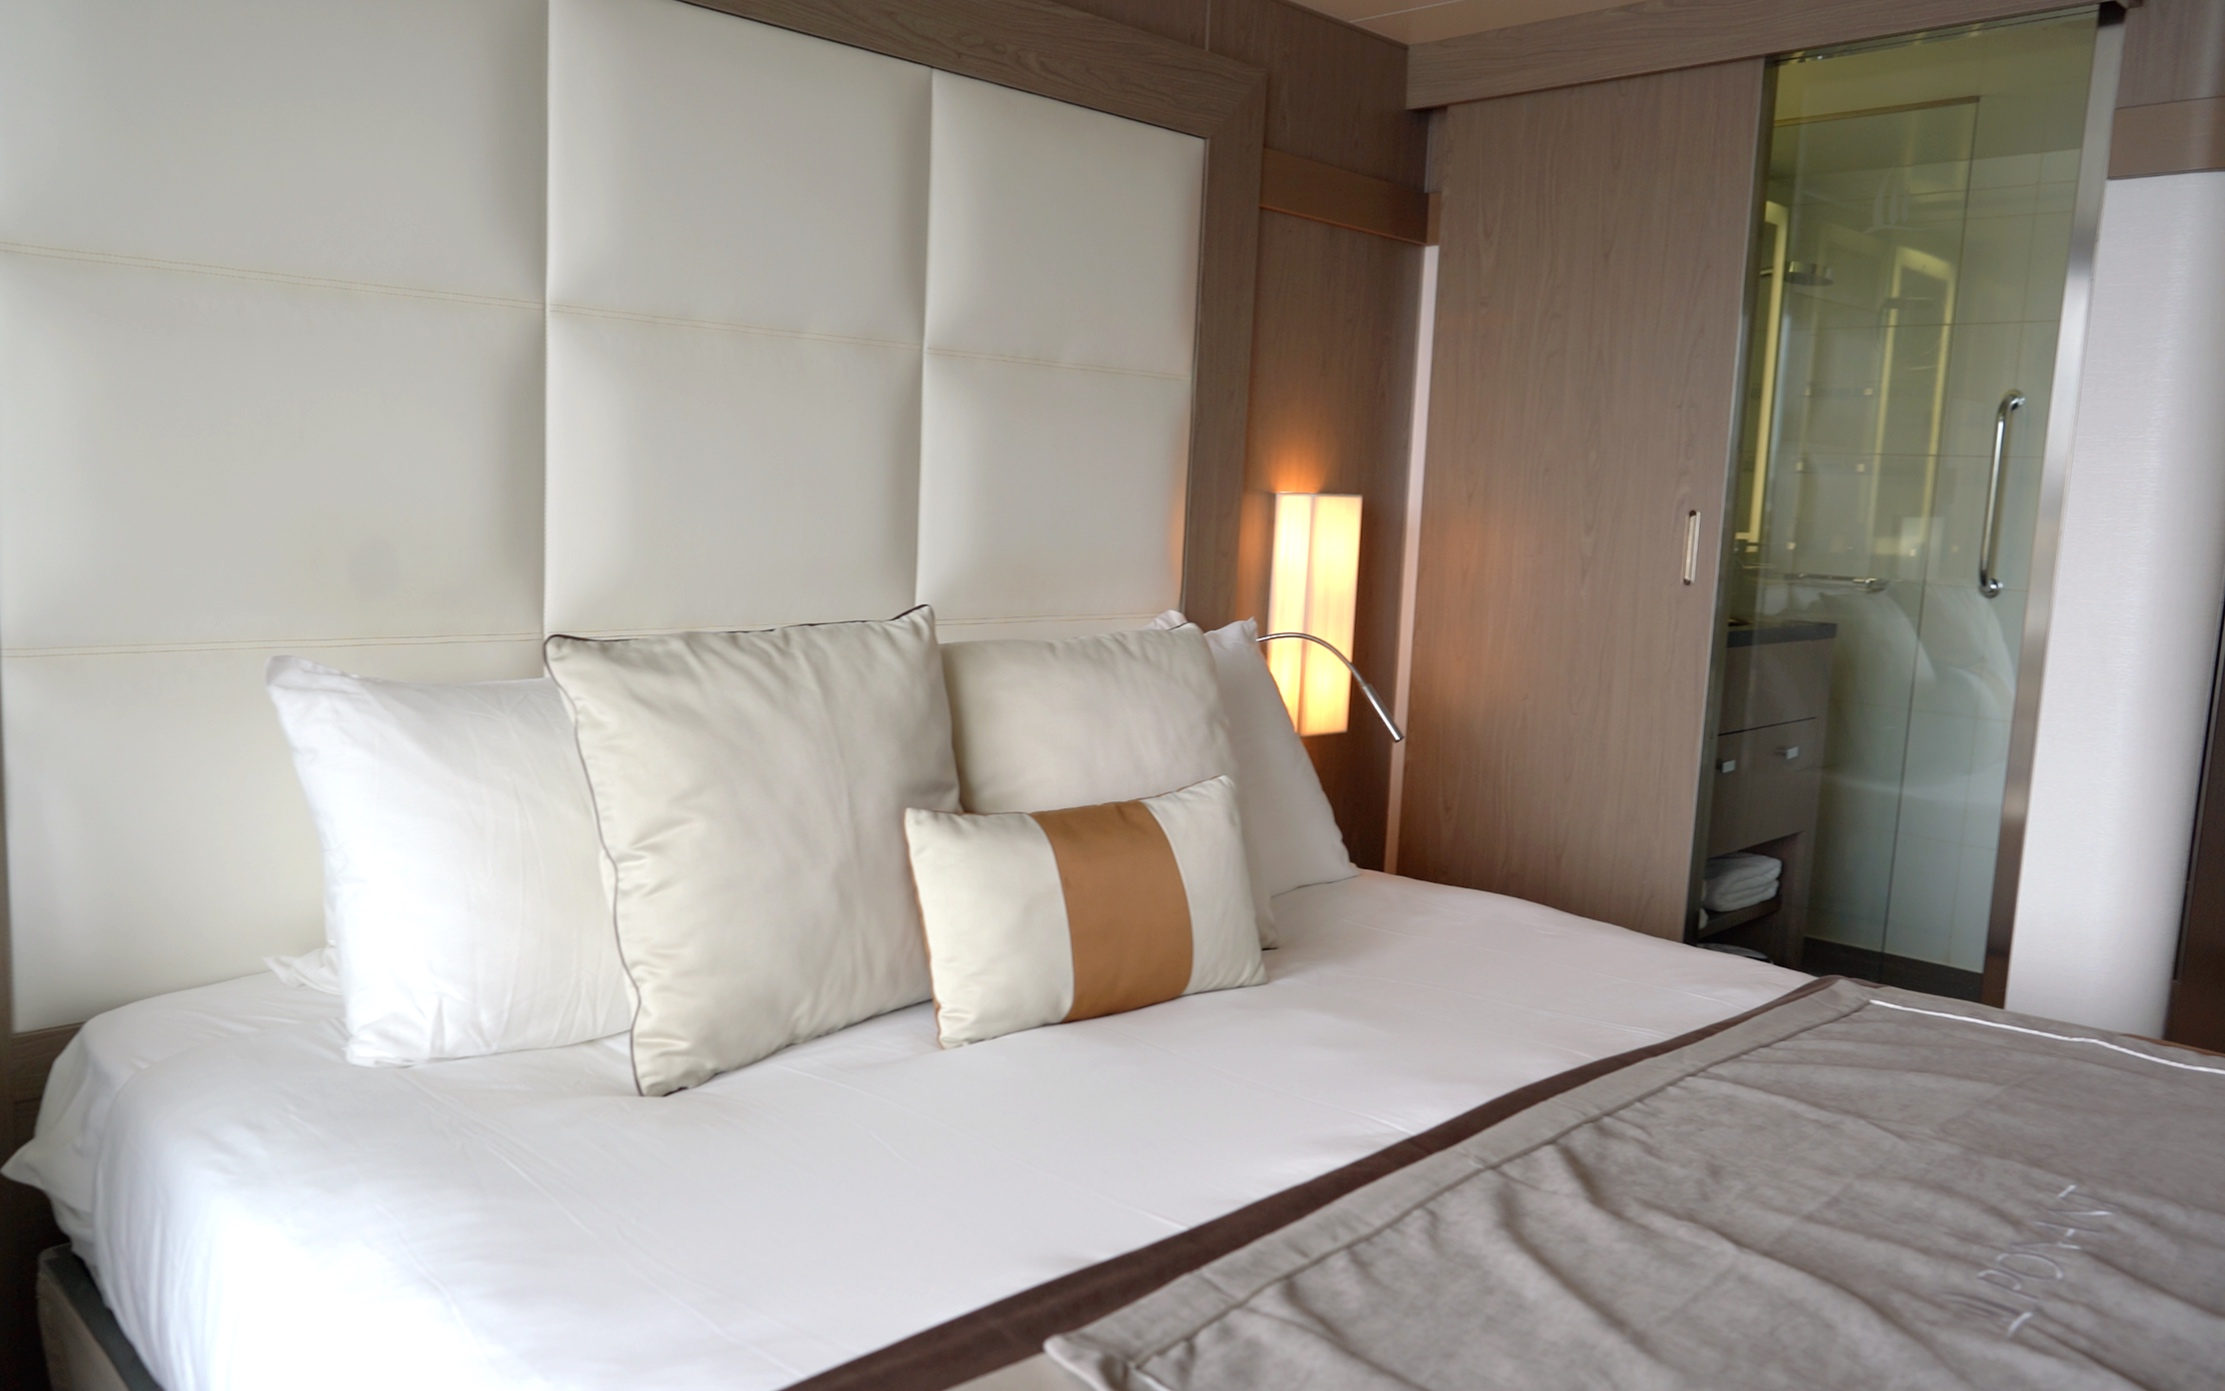 Comfortable looking bed - you can see the glass wall to the shower room.